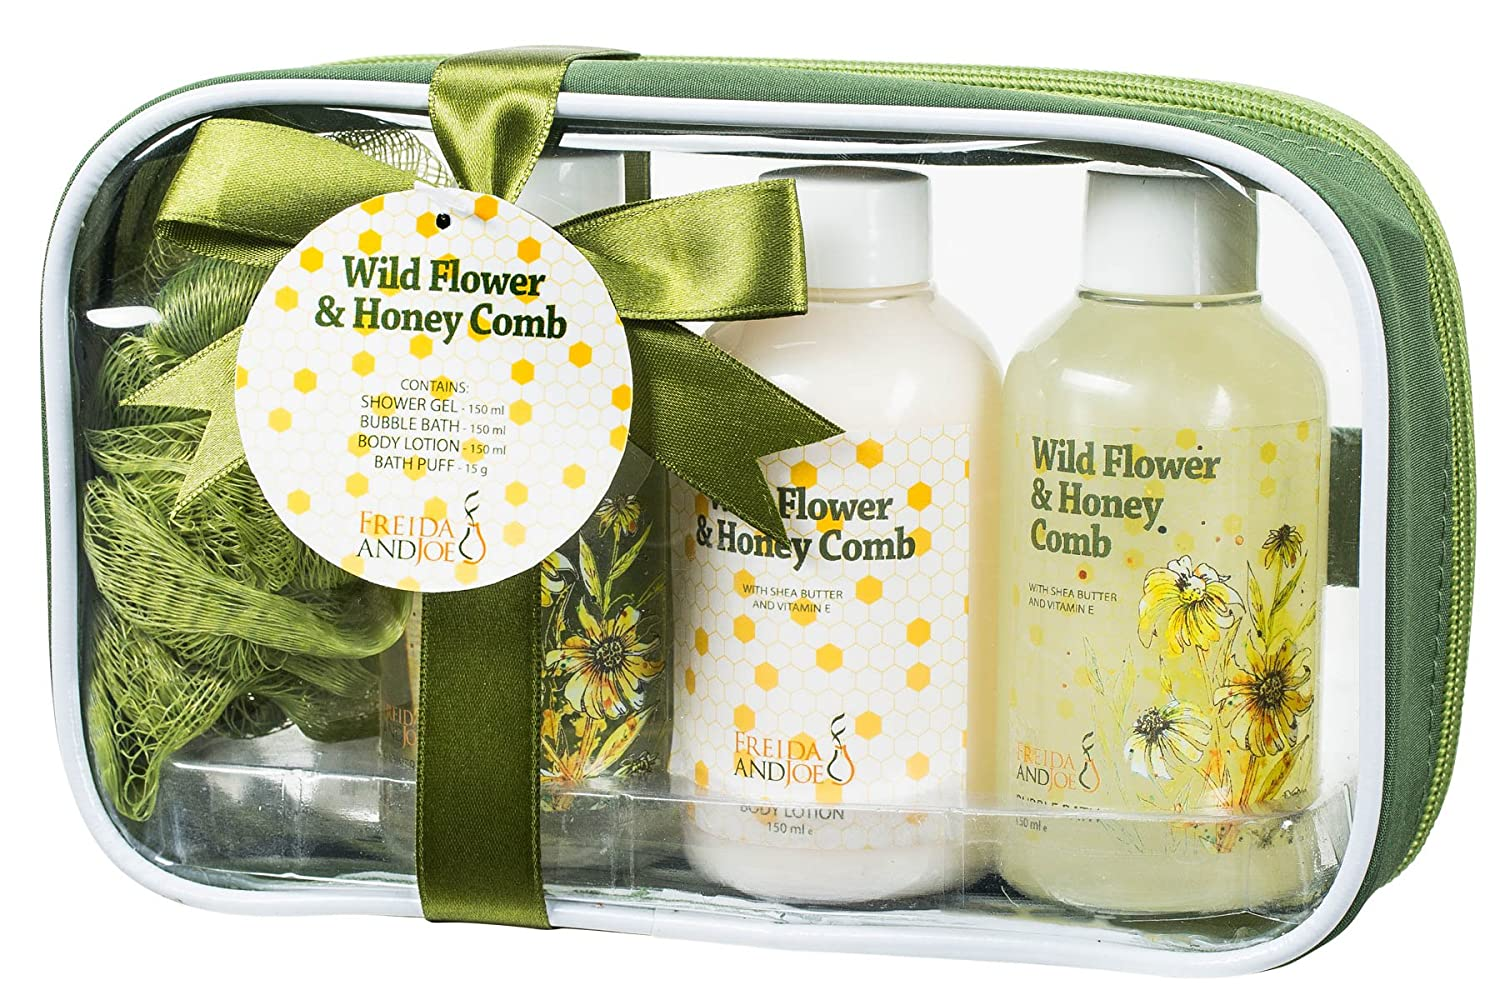 Bath and Body Travel Size Gift Set for Women, in Wild Flower and Honey Comb Fragrance, includes a Body Lotion, Shower Gel, and Bubble Bath, all with Shea Butter and Vitamin E